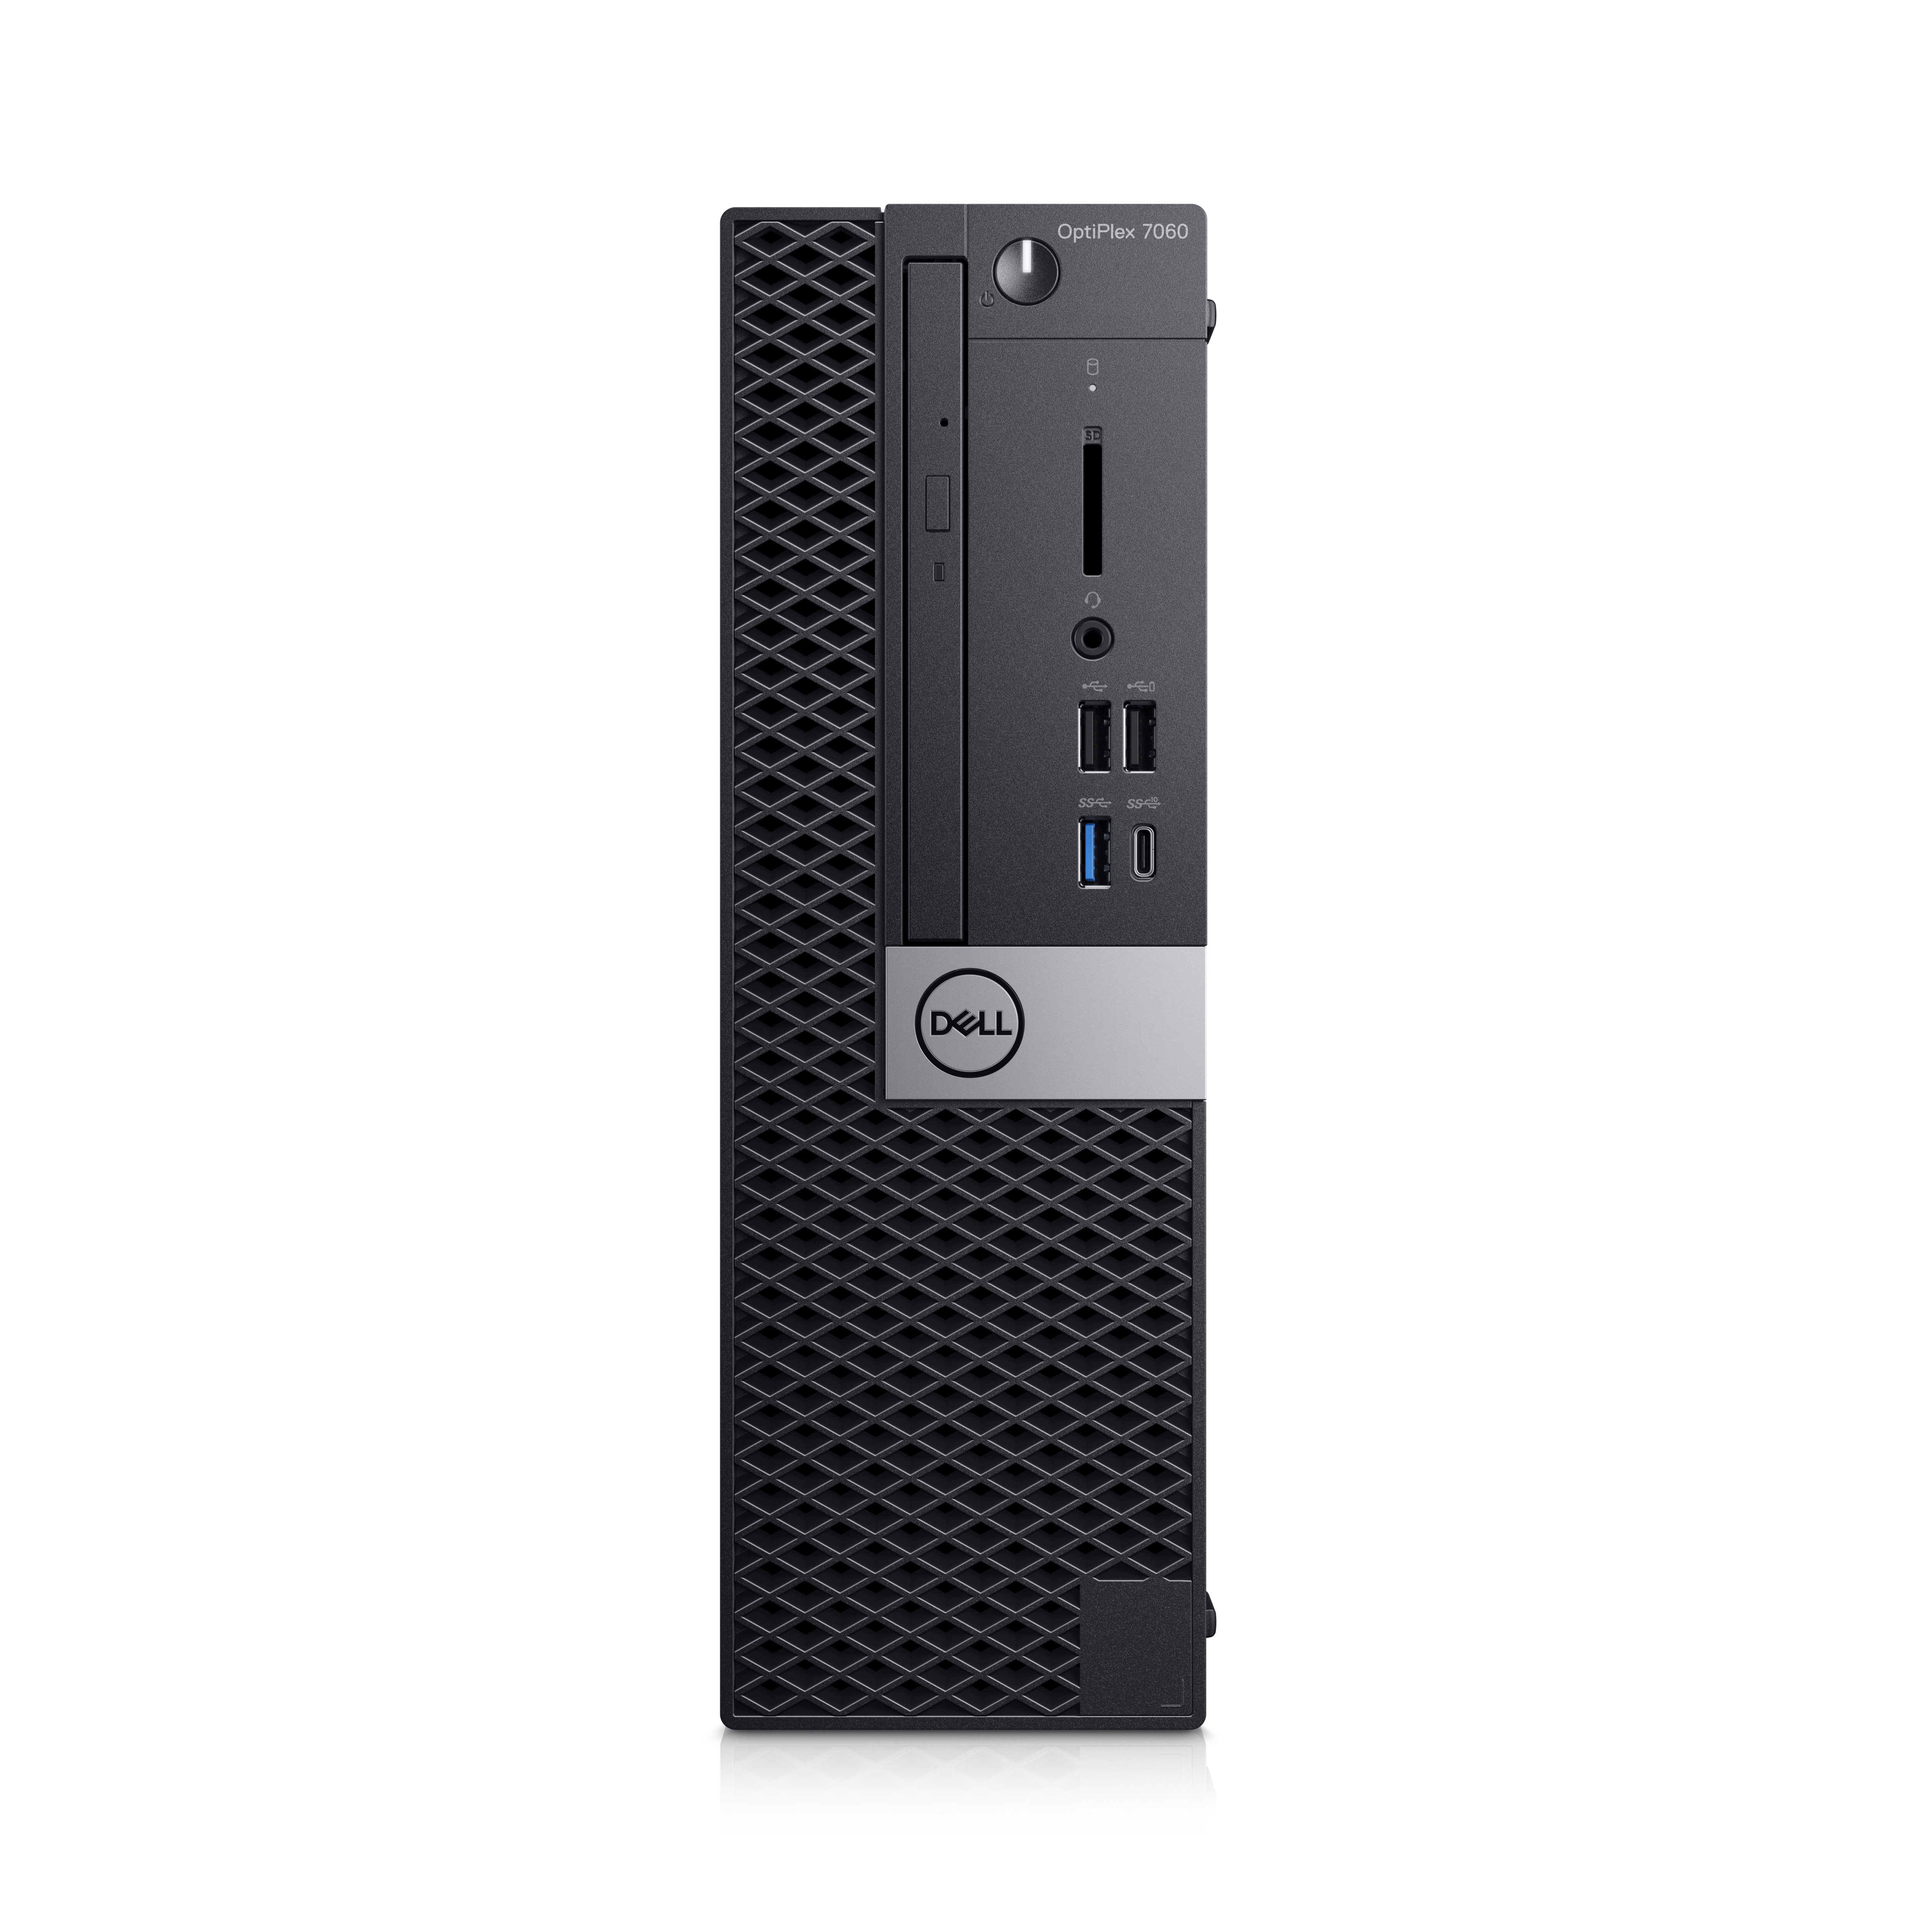 DELL OPTIPLEX 7060 3.2GHZ I7-8700 SFF BLACK PC